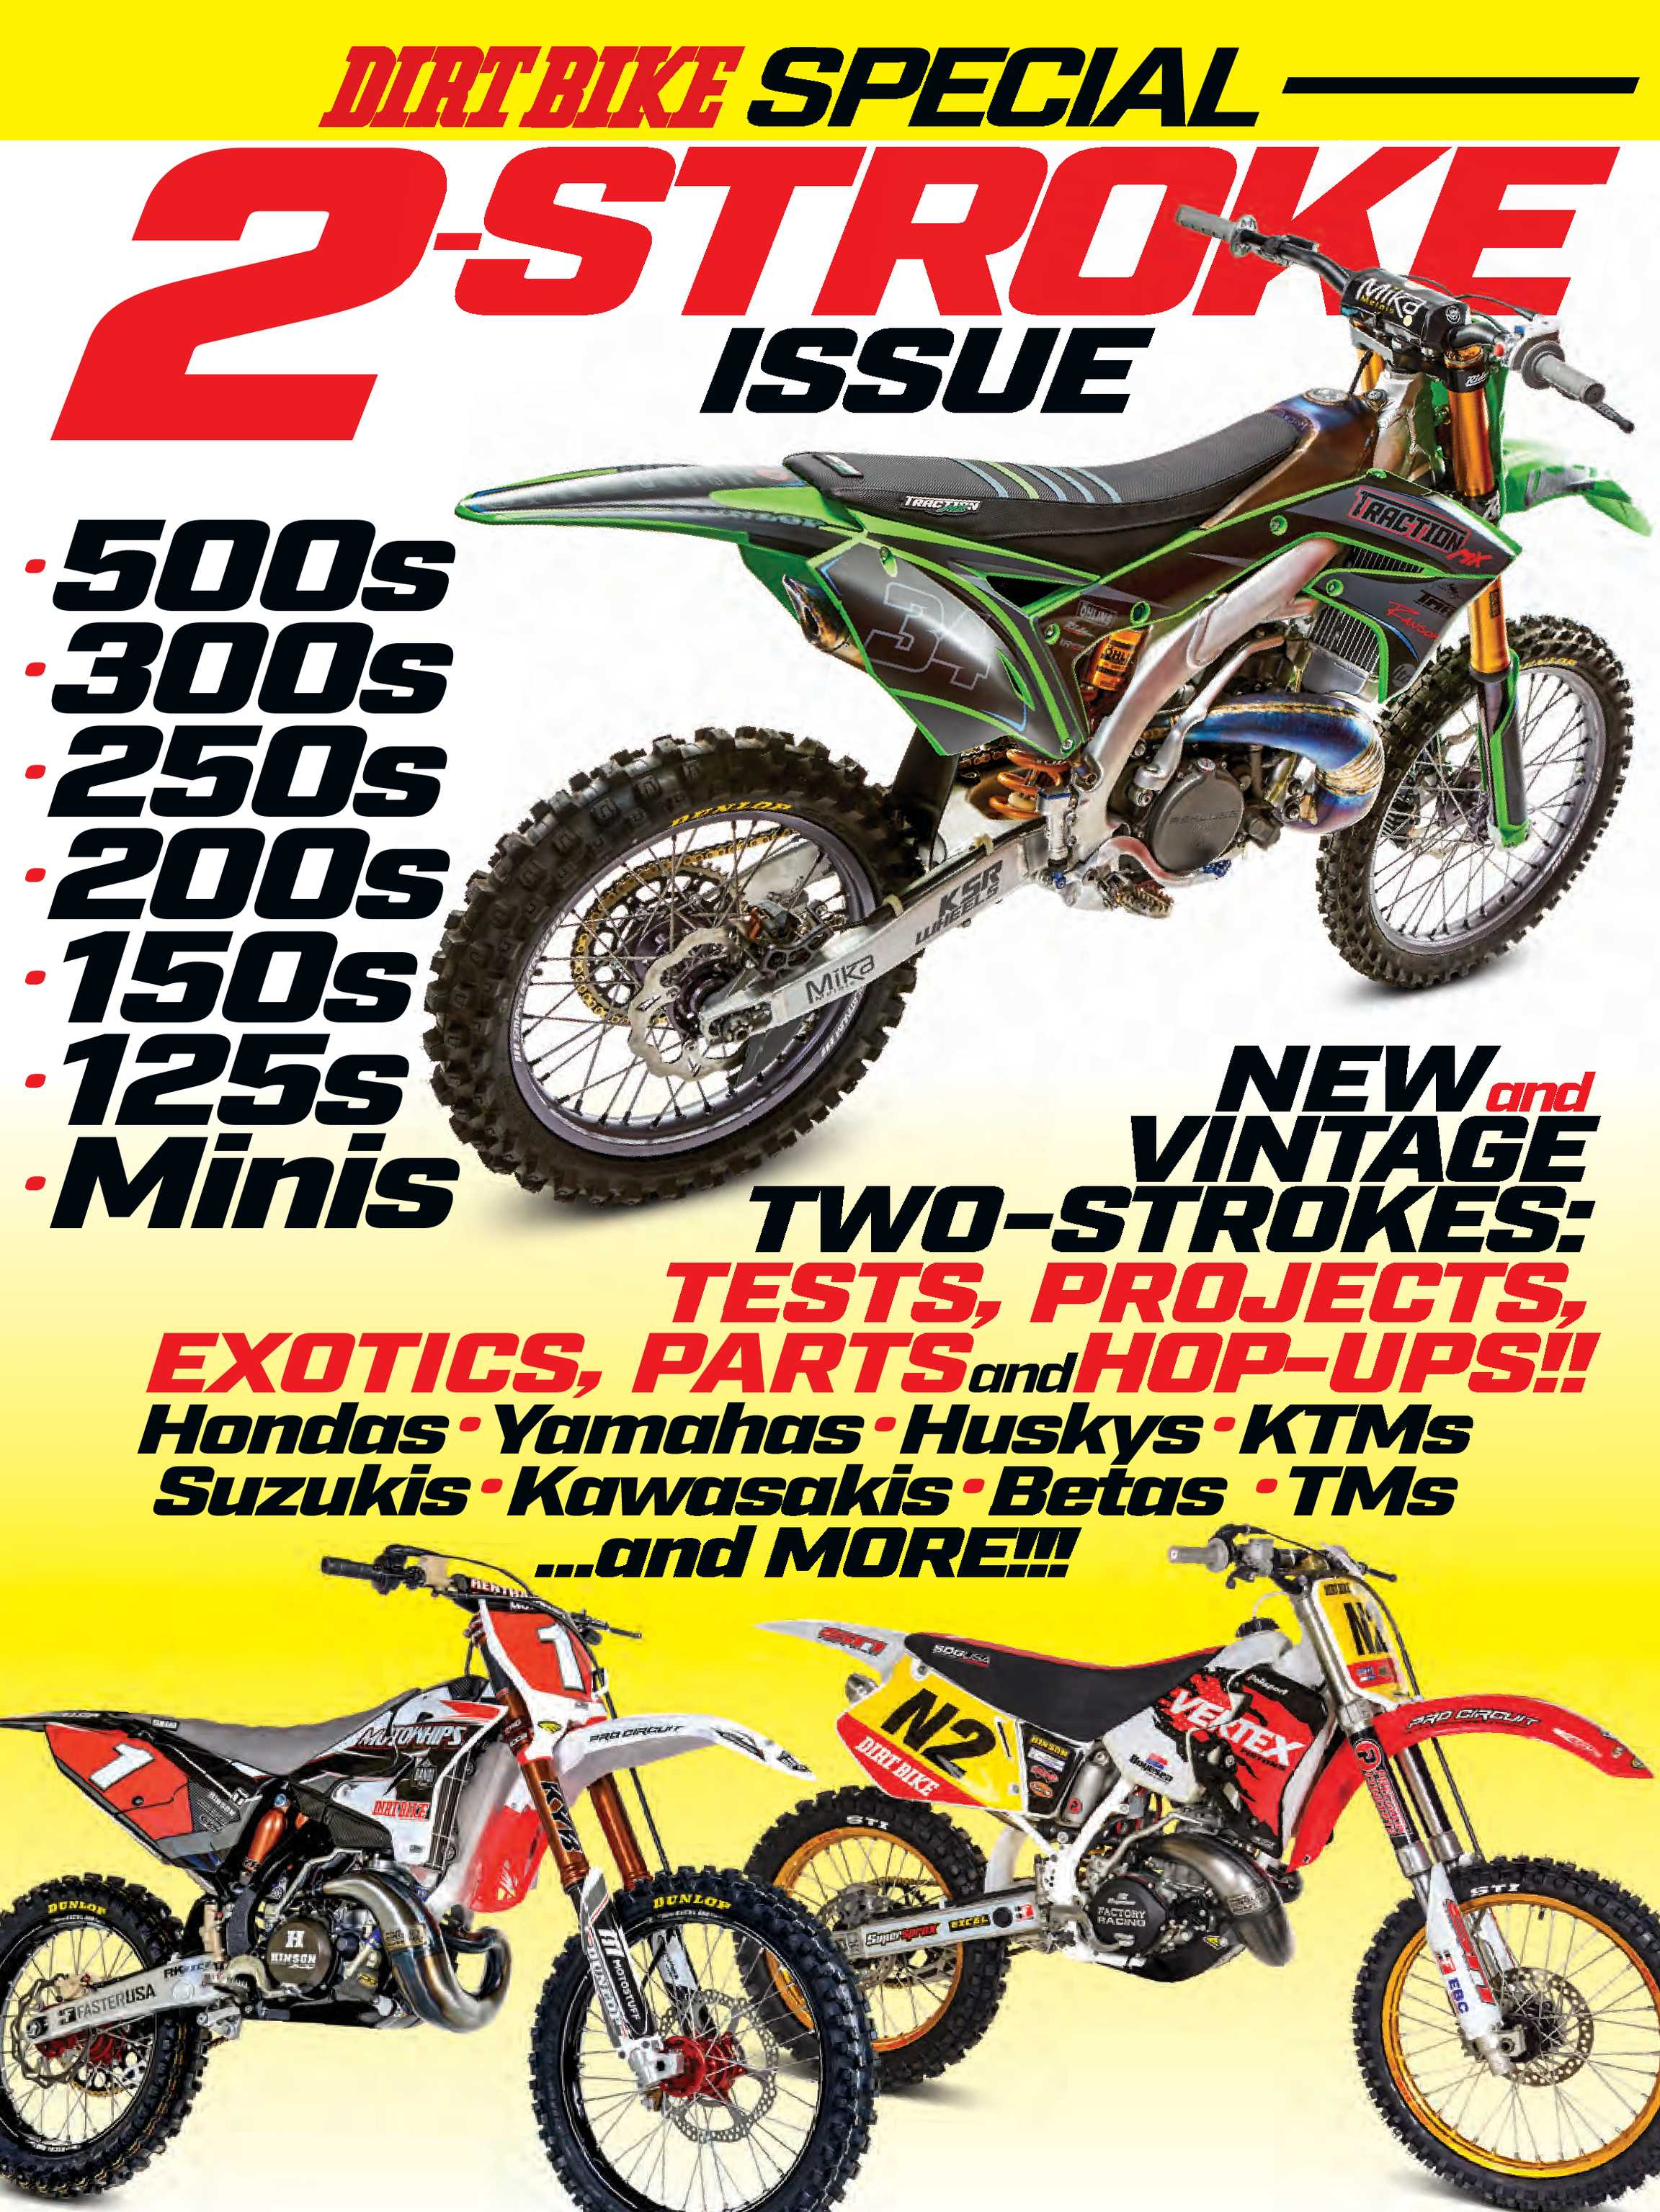 Dirt Bike Magazine - 2-STROKES New and Old - page Cover